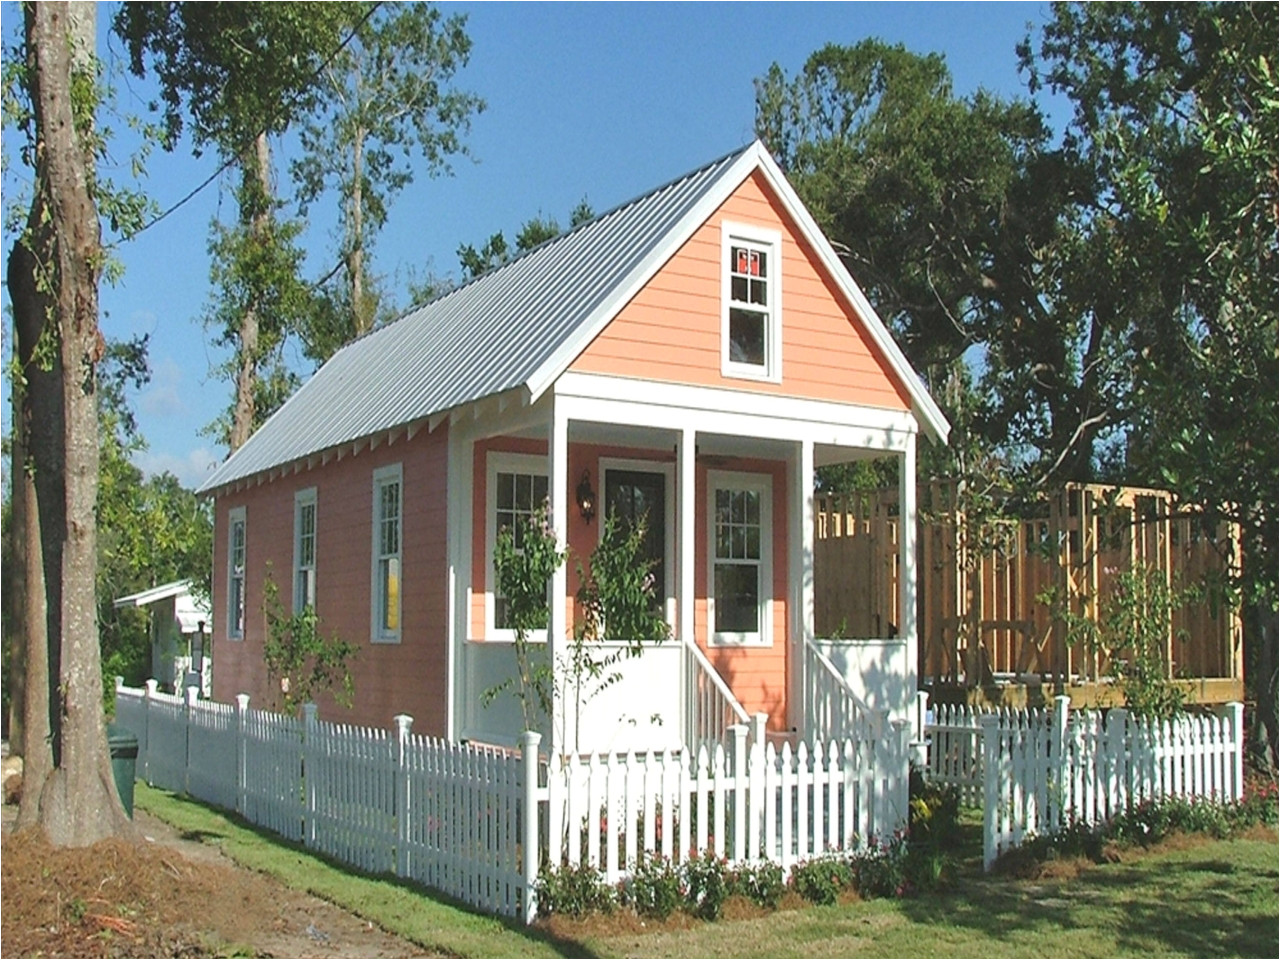 Carolina Small Home Plans south Carolina Small House Plans Home Design and Style